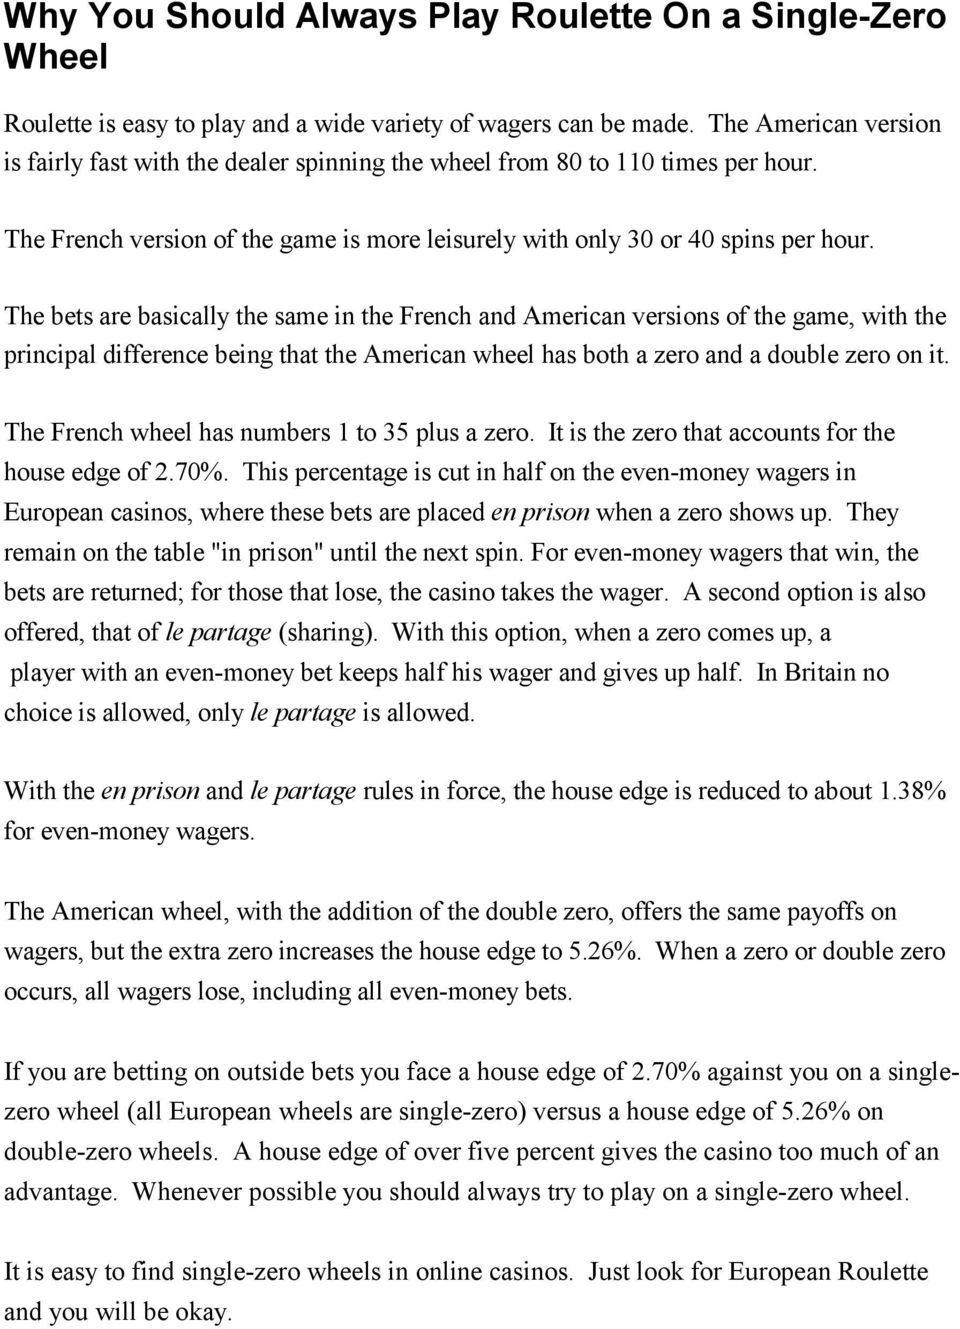 The bets are basically the same in the French and American versions of the game, with the principal difference being that the American wheel has both a zero and a double zero on it.